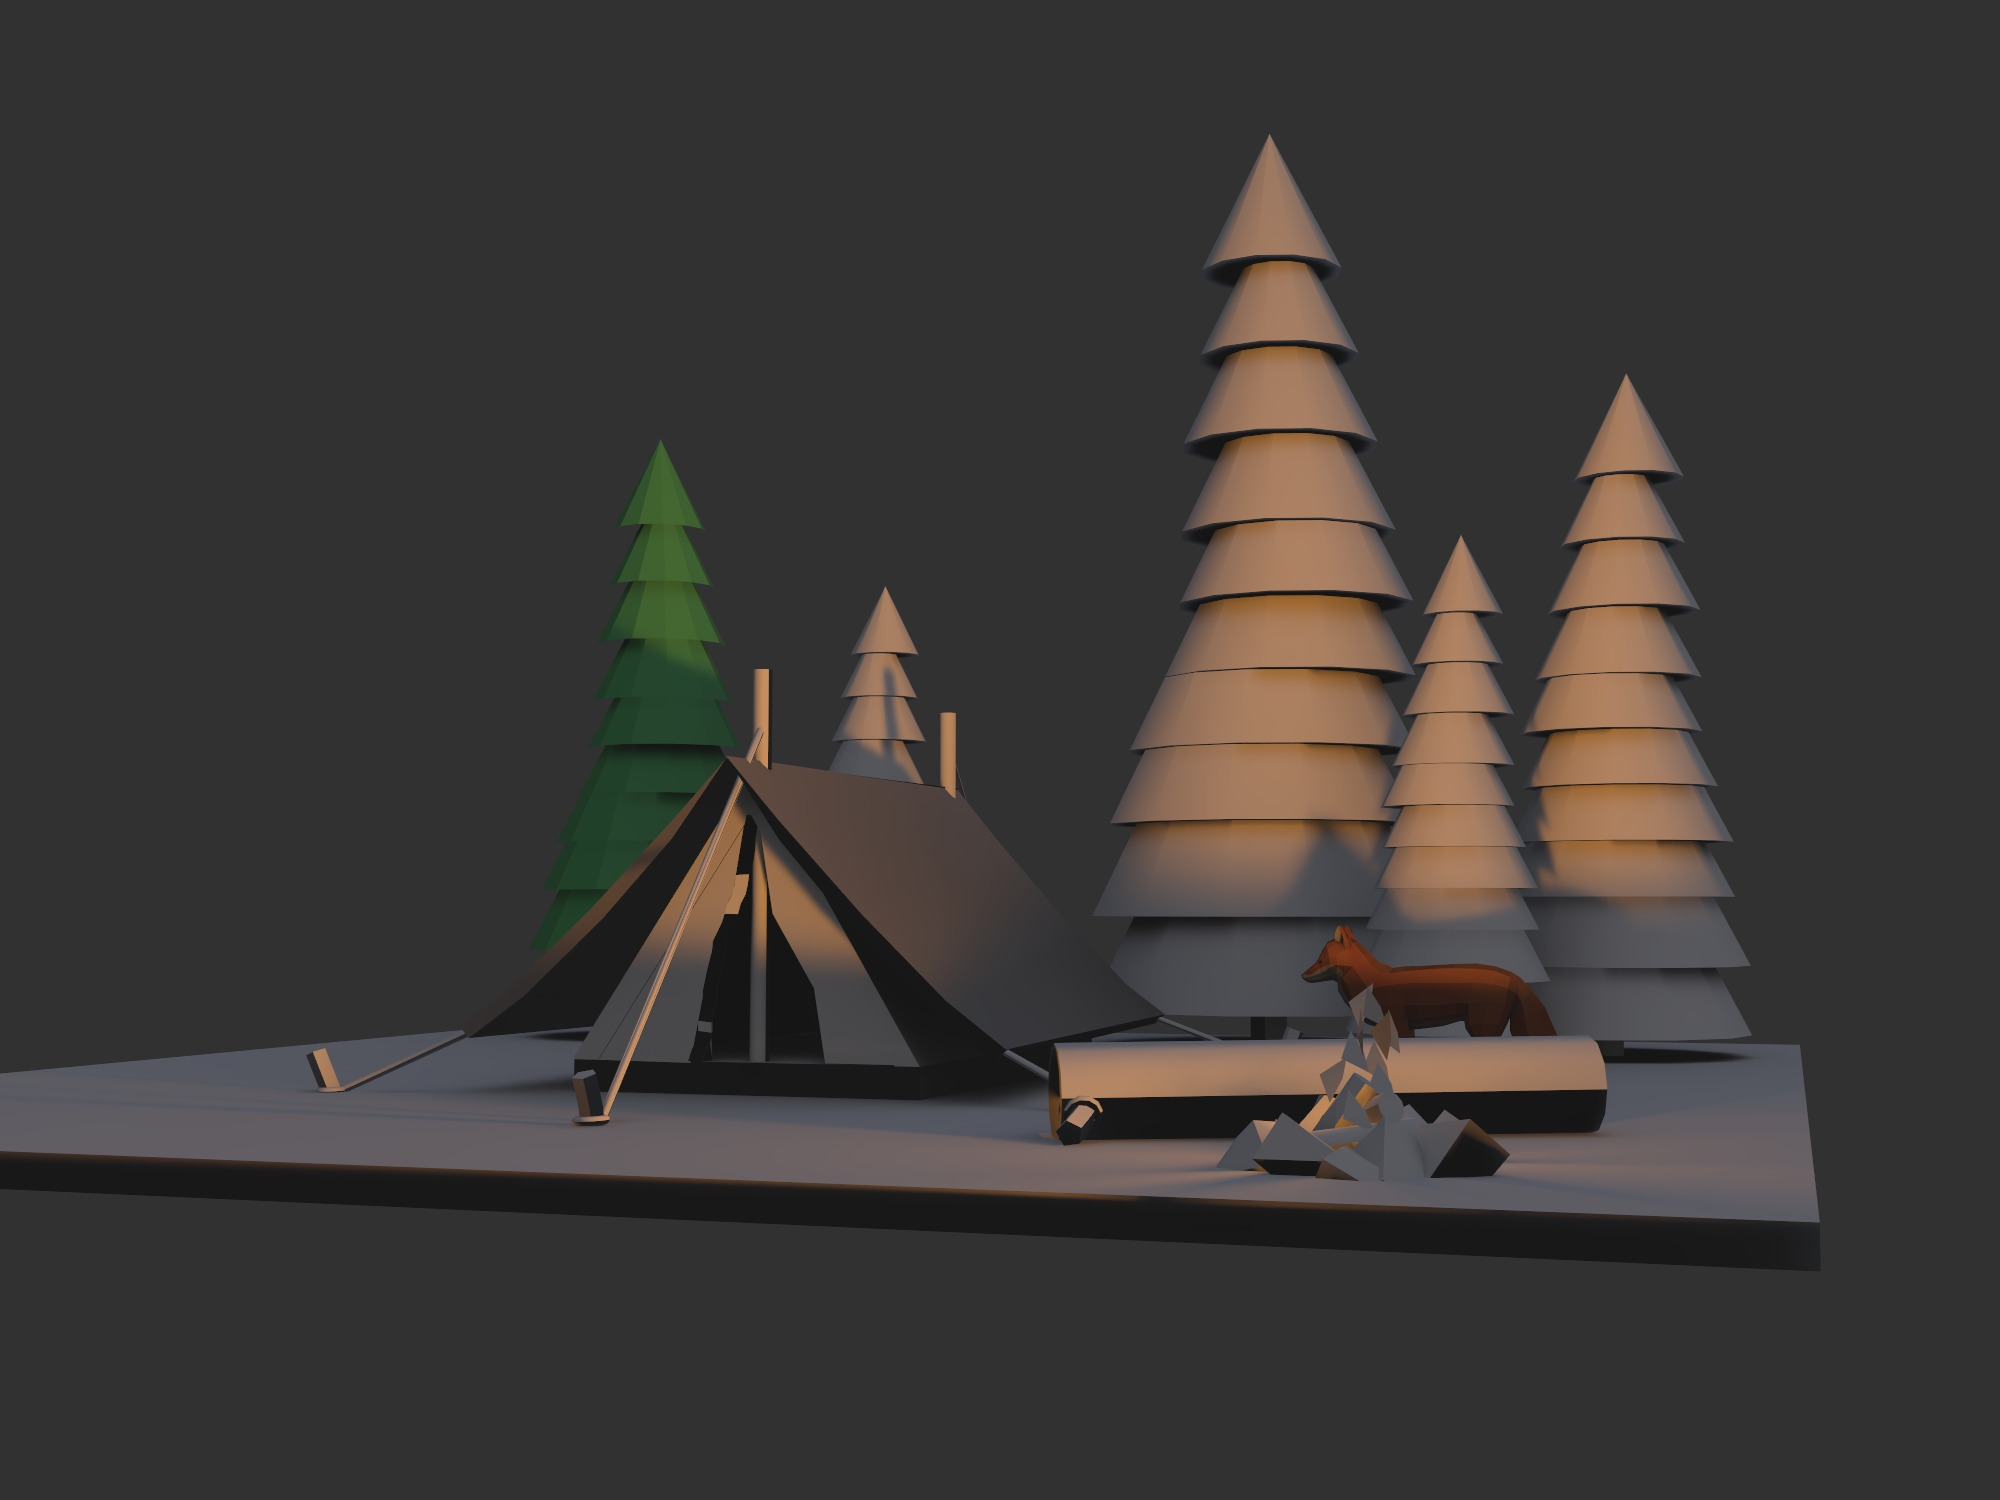 Camping - 3D design by Milan Gladiš Jun 22, 2018